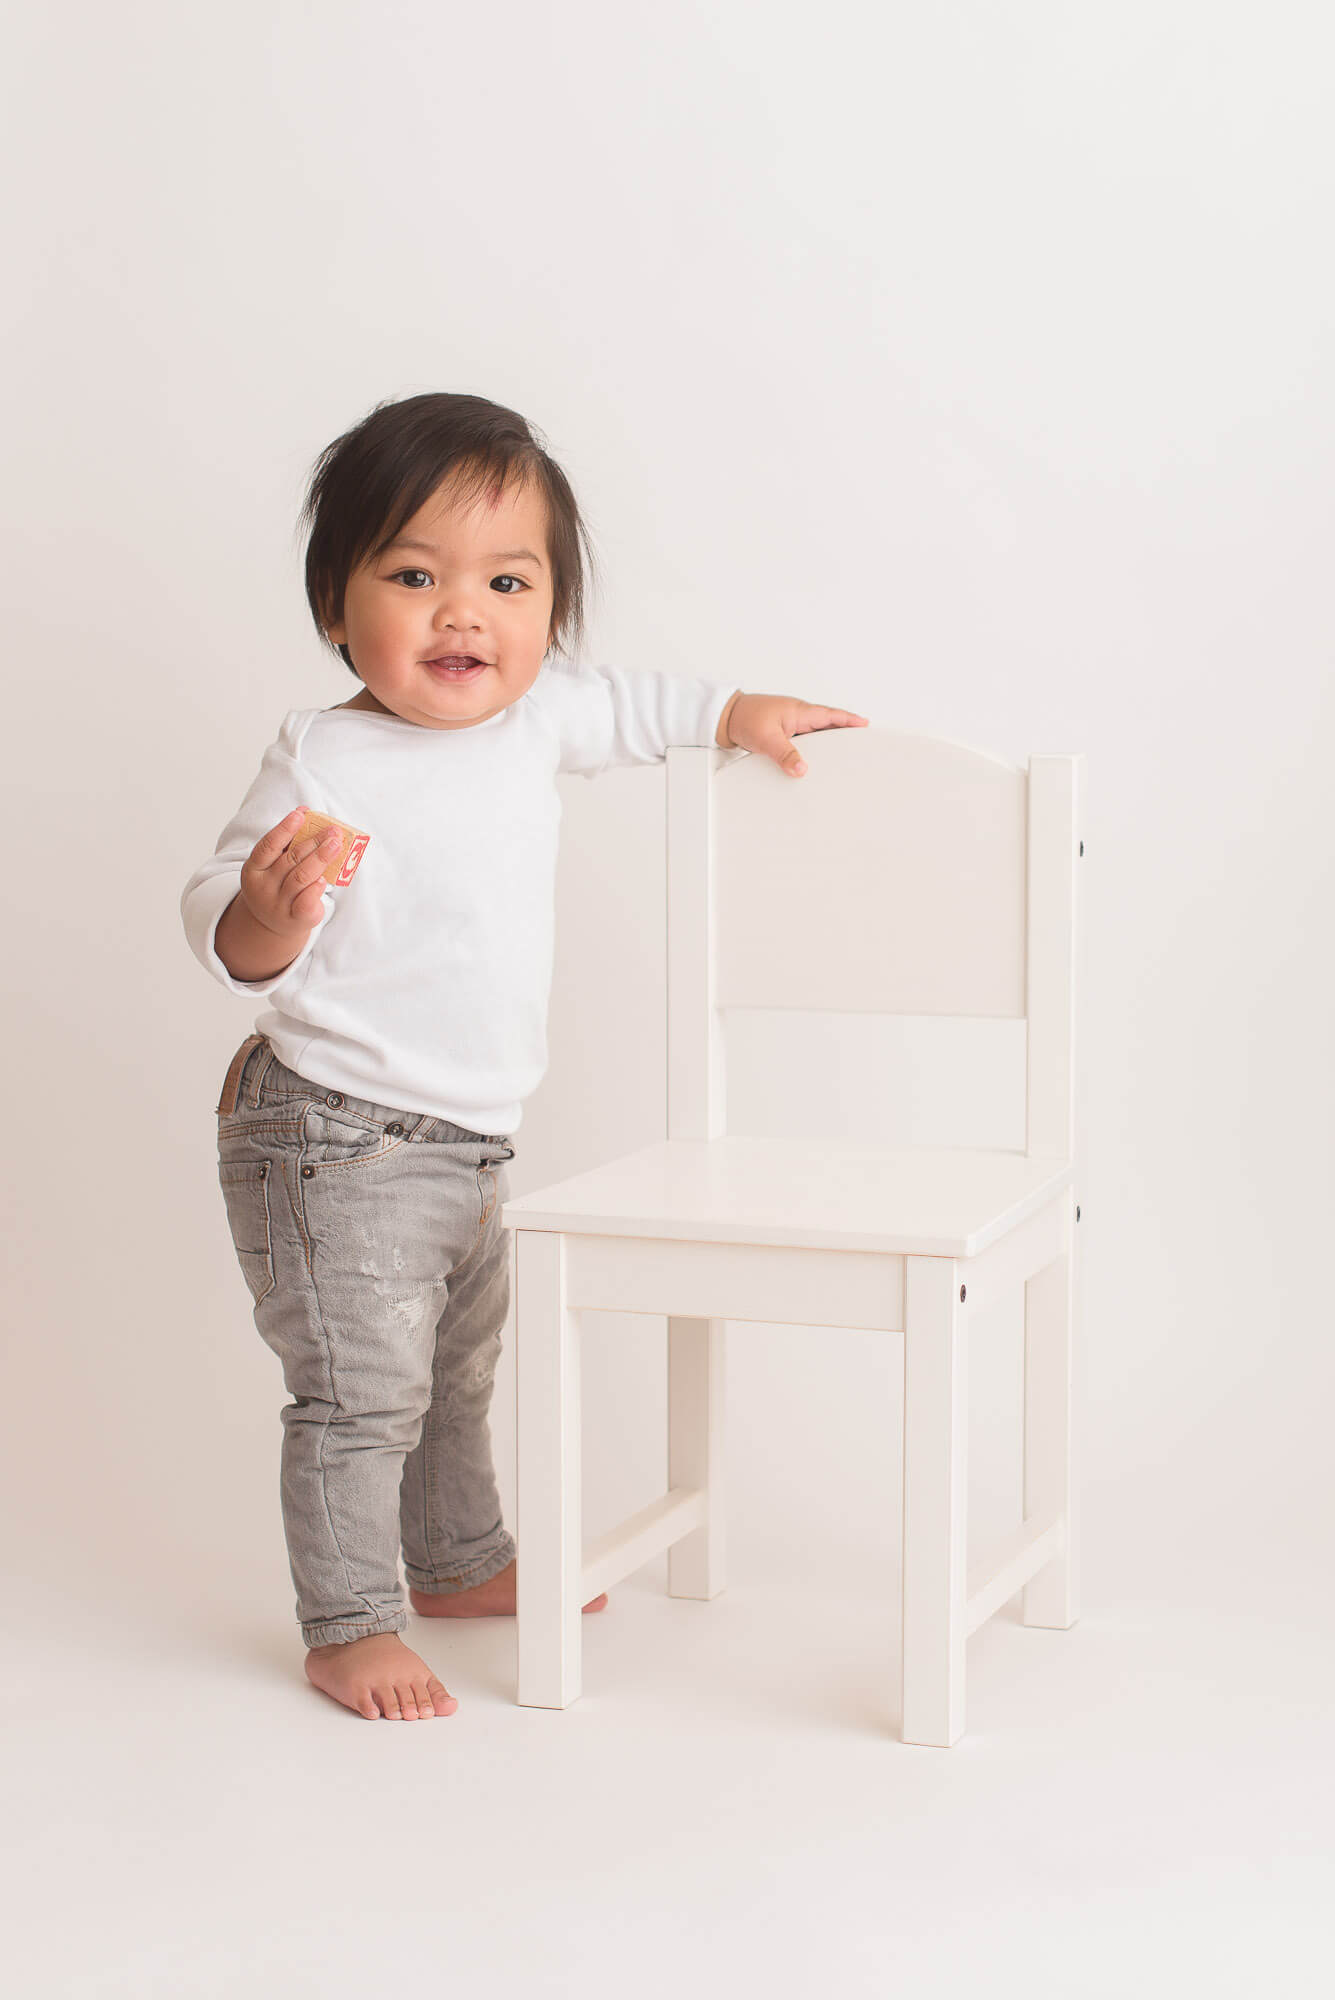 simple child photography session with boy standing next to chair